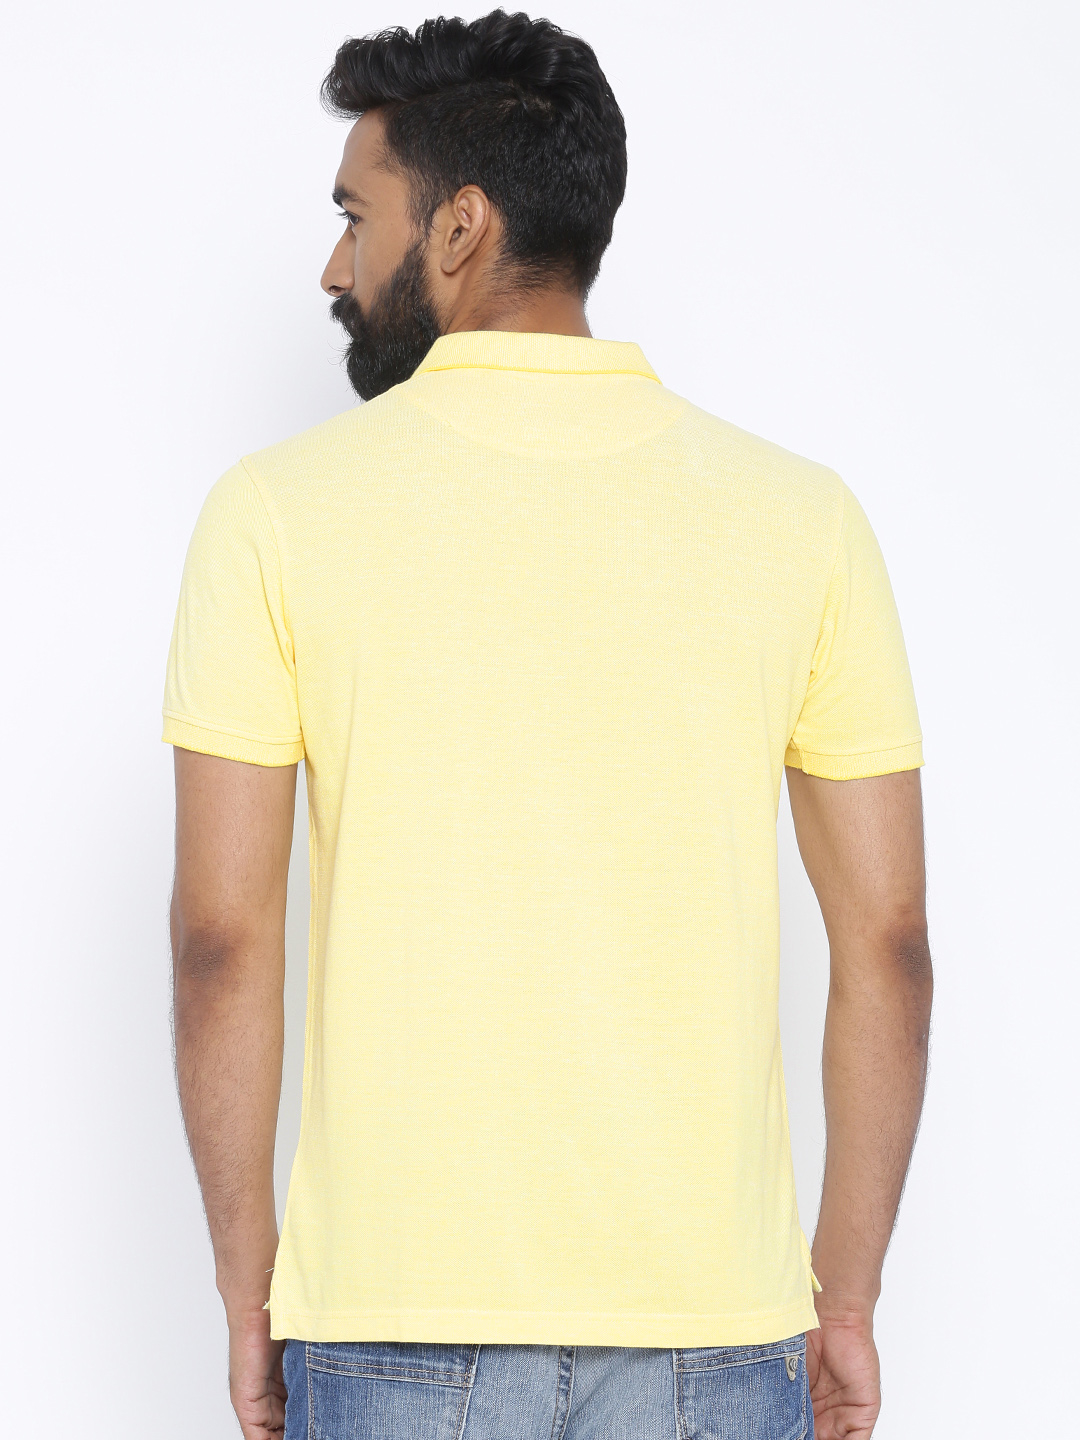 Indian terrain plain yellow polo t shirt g3 mts4762 for Polo t shirts india